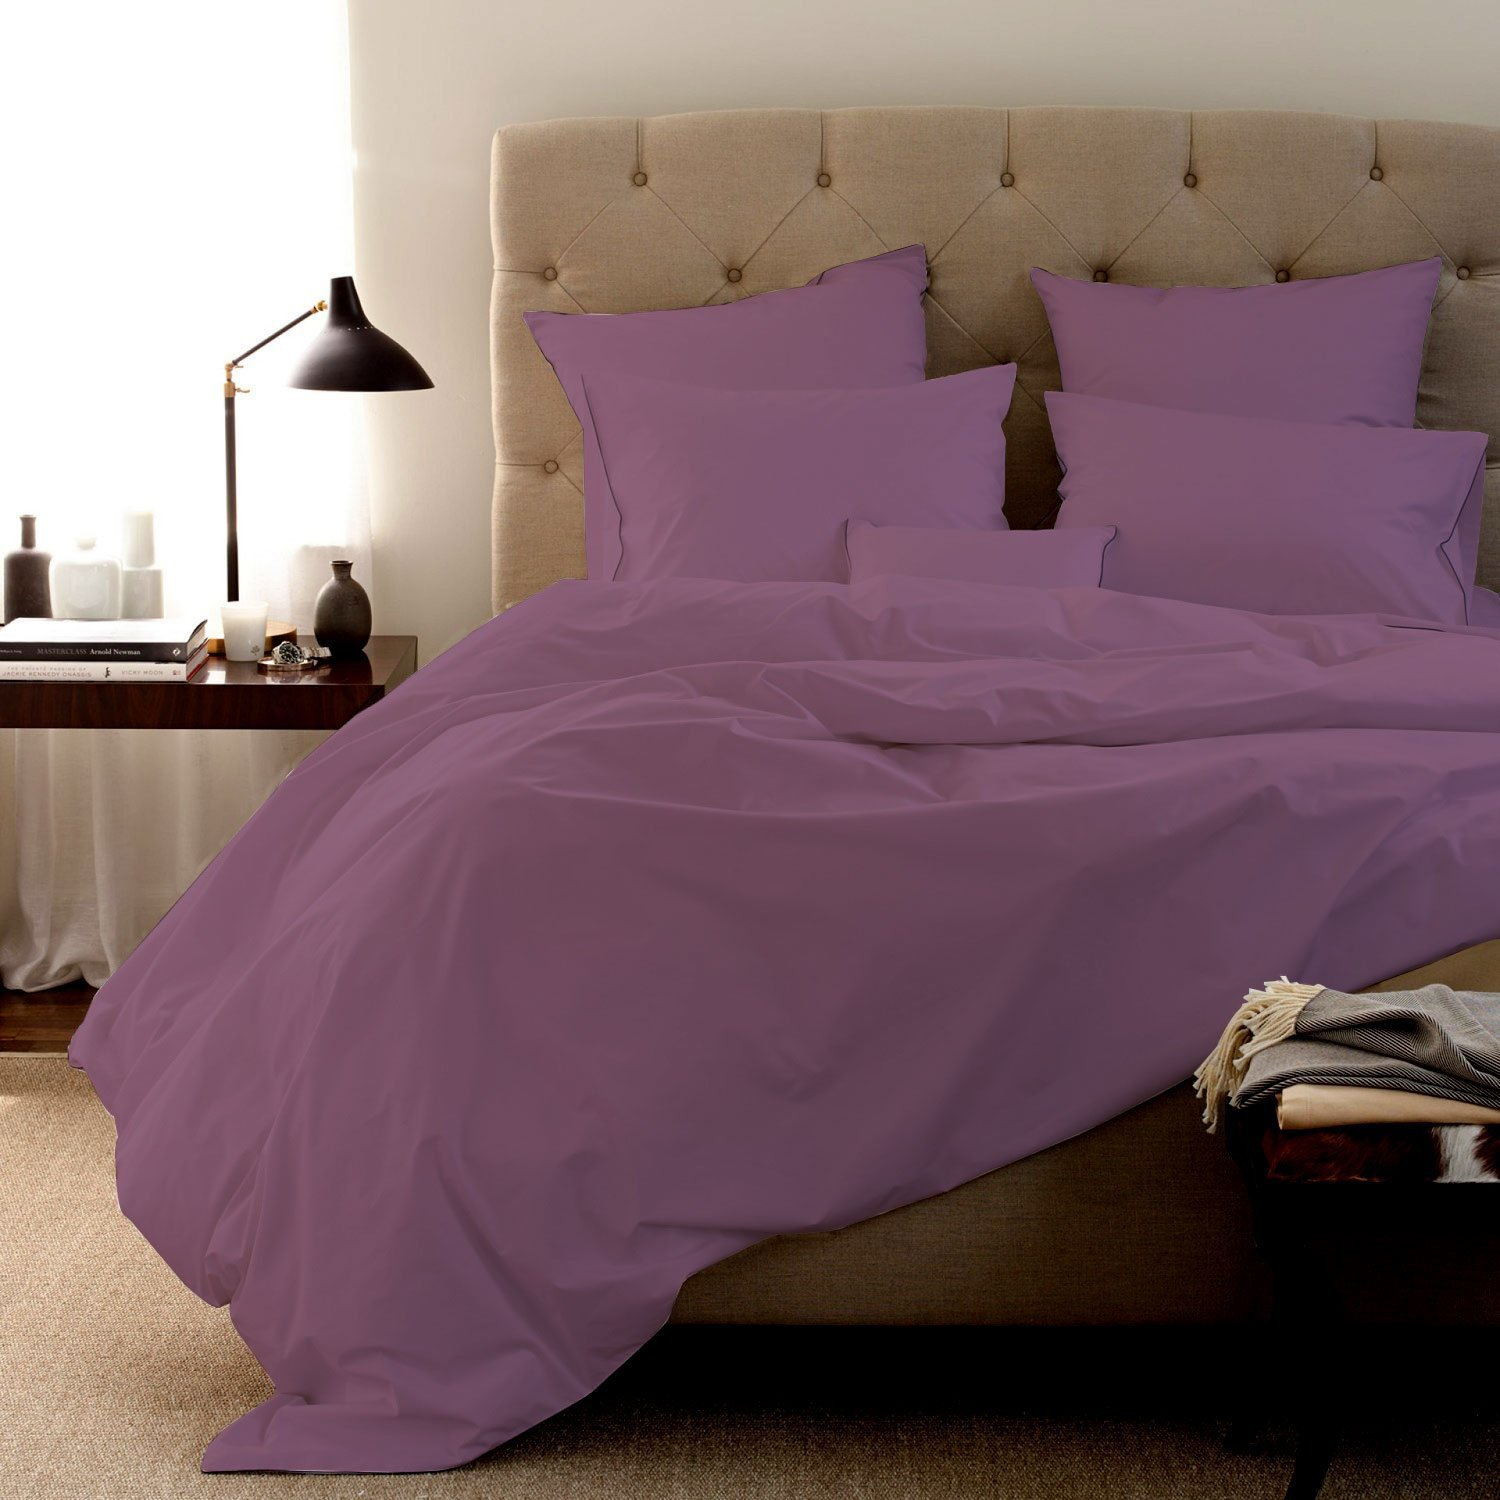 Authentic Egyptian cotton Sheet Set fits mattresses up to 18'' deep 1000 TC Color- Lilac Solid Size Queen ORIGINALLY SOLD BY LUSSONA BEDDINGS